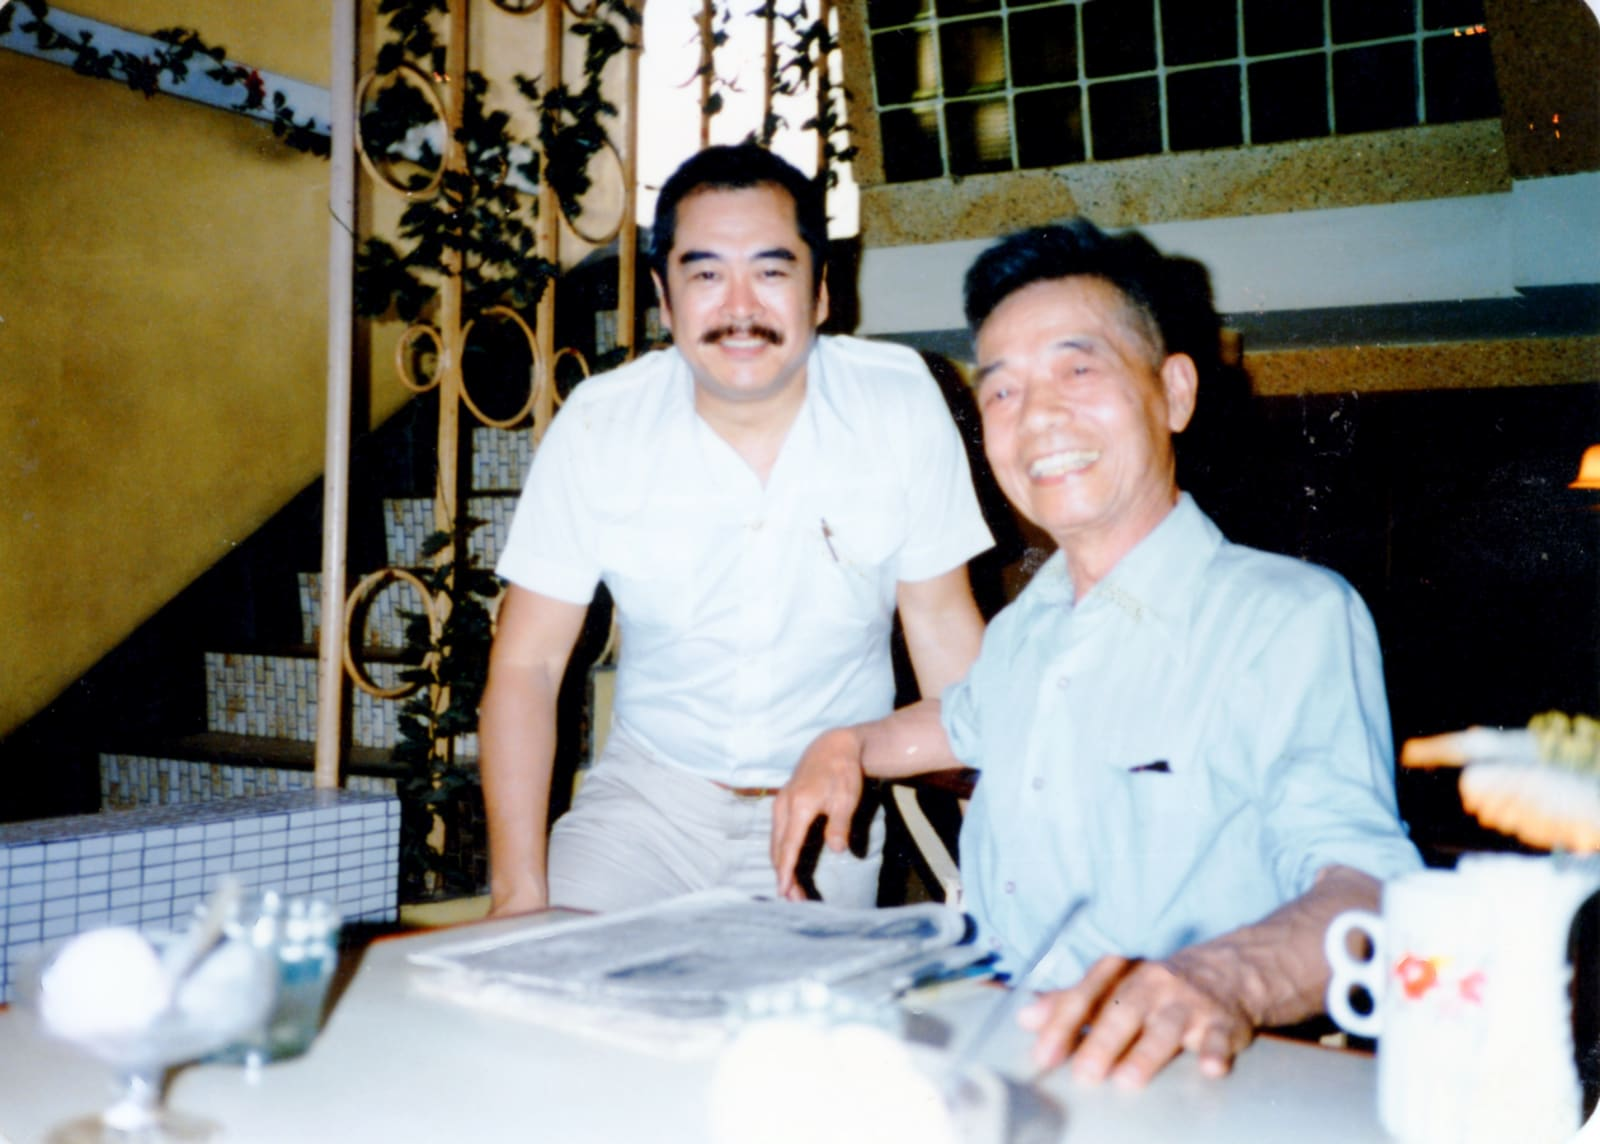 Apr 1981, Hsiao Chin with Li Chun-shan in Changhua, Taiwan 1981年4月蕭勤與李仲生在臺灣彰化